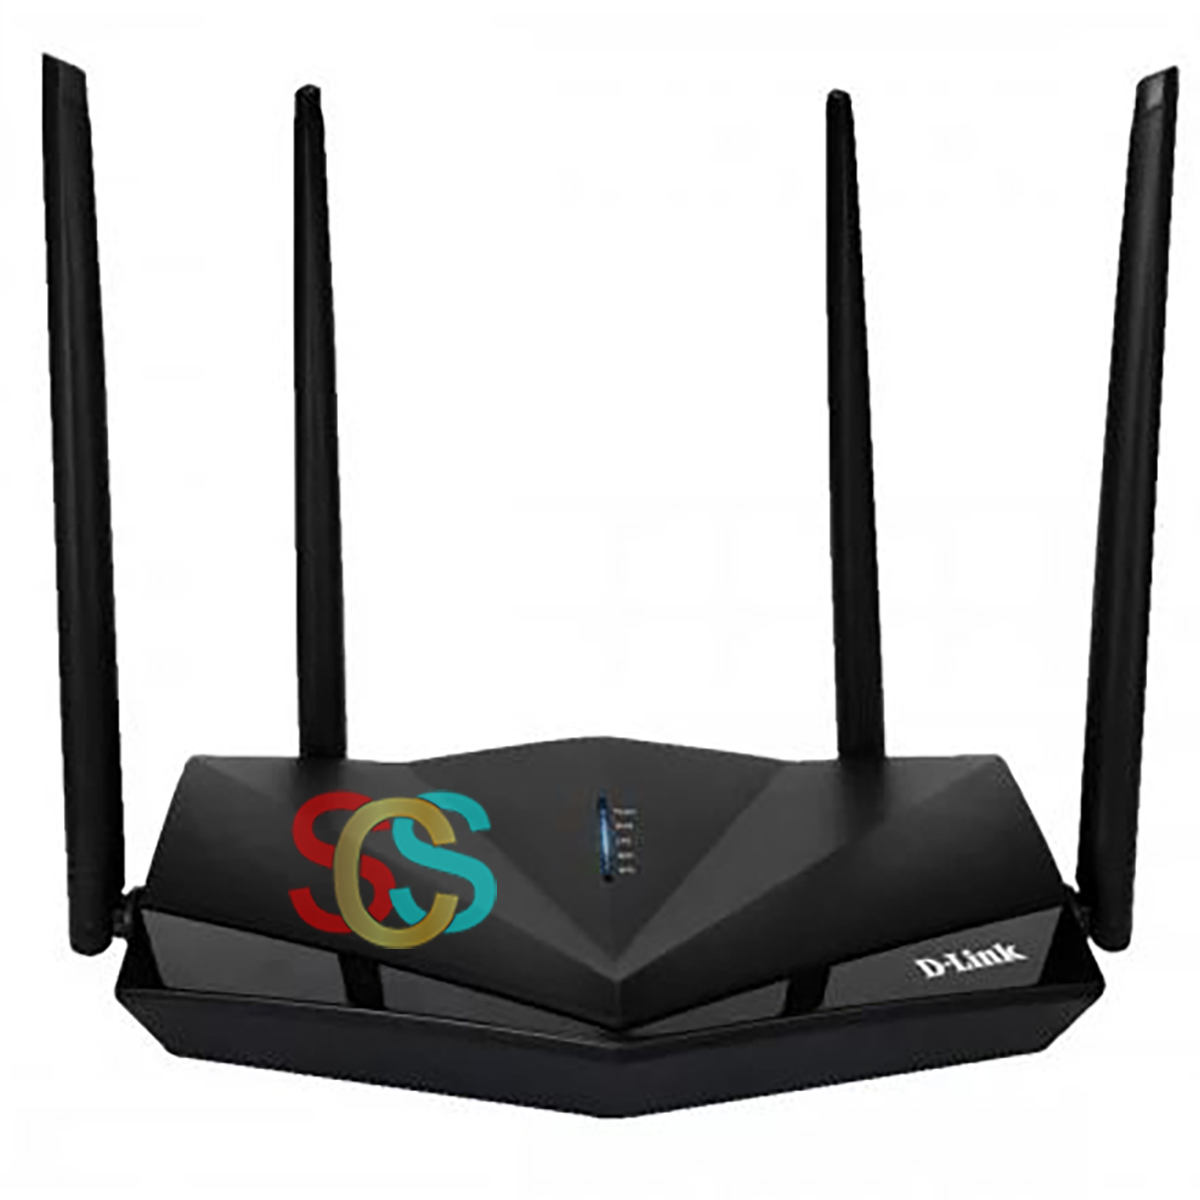 D-Link DIR-650IN N300 Mbps Ethernet Single-Band Wi-Fi Router